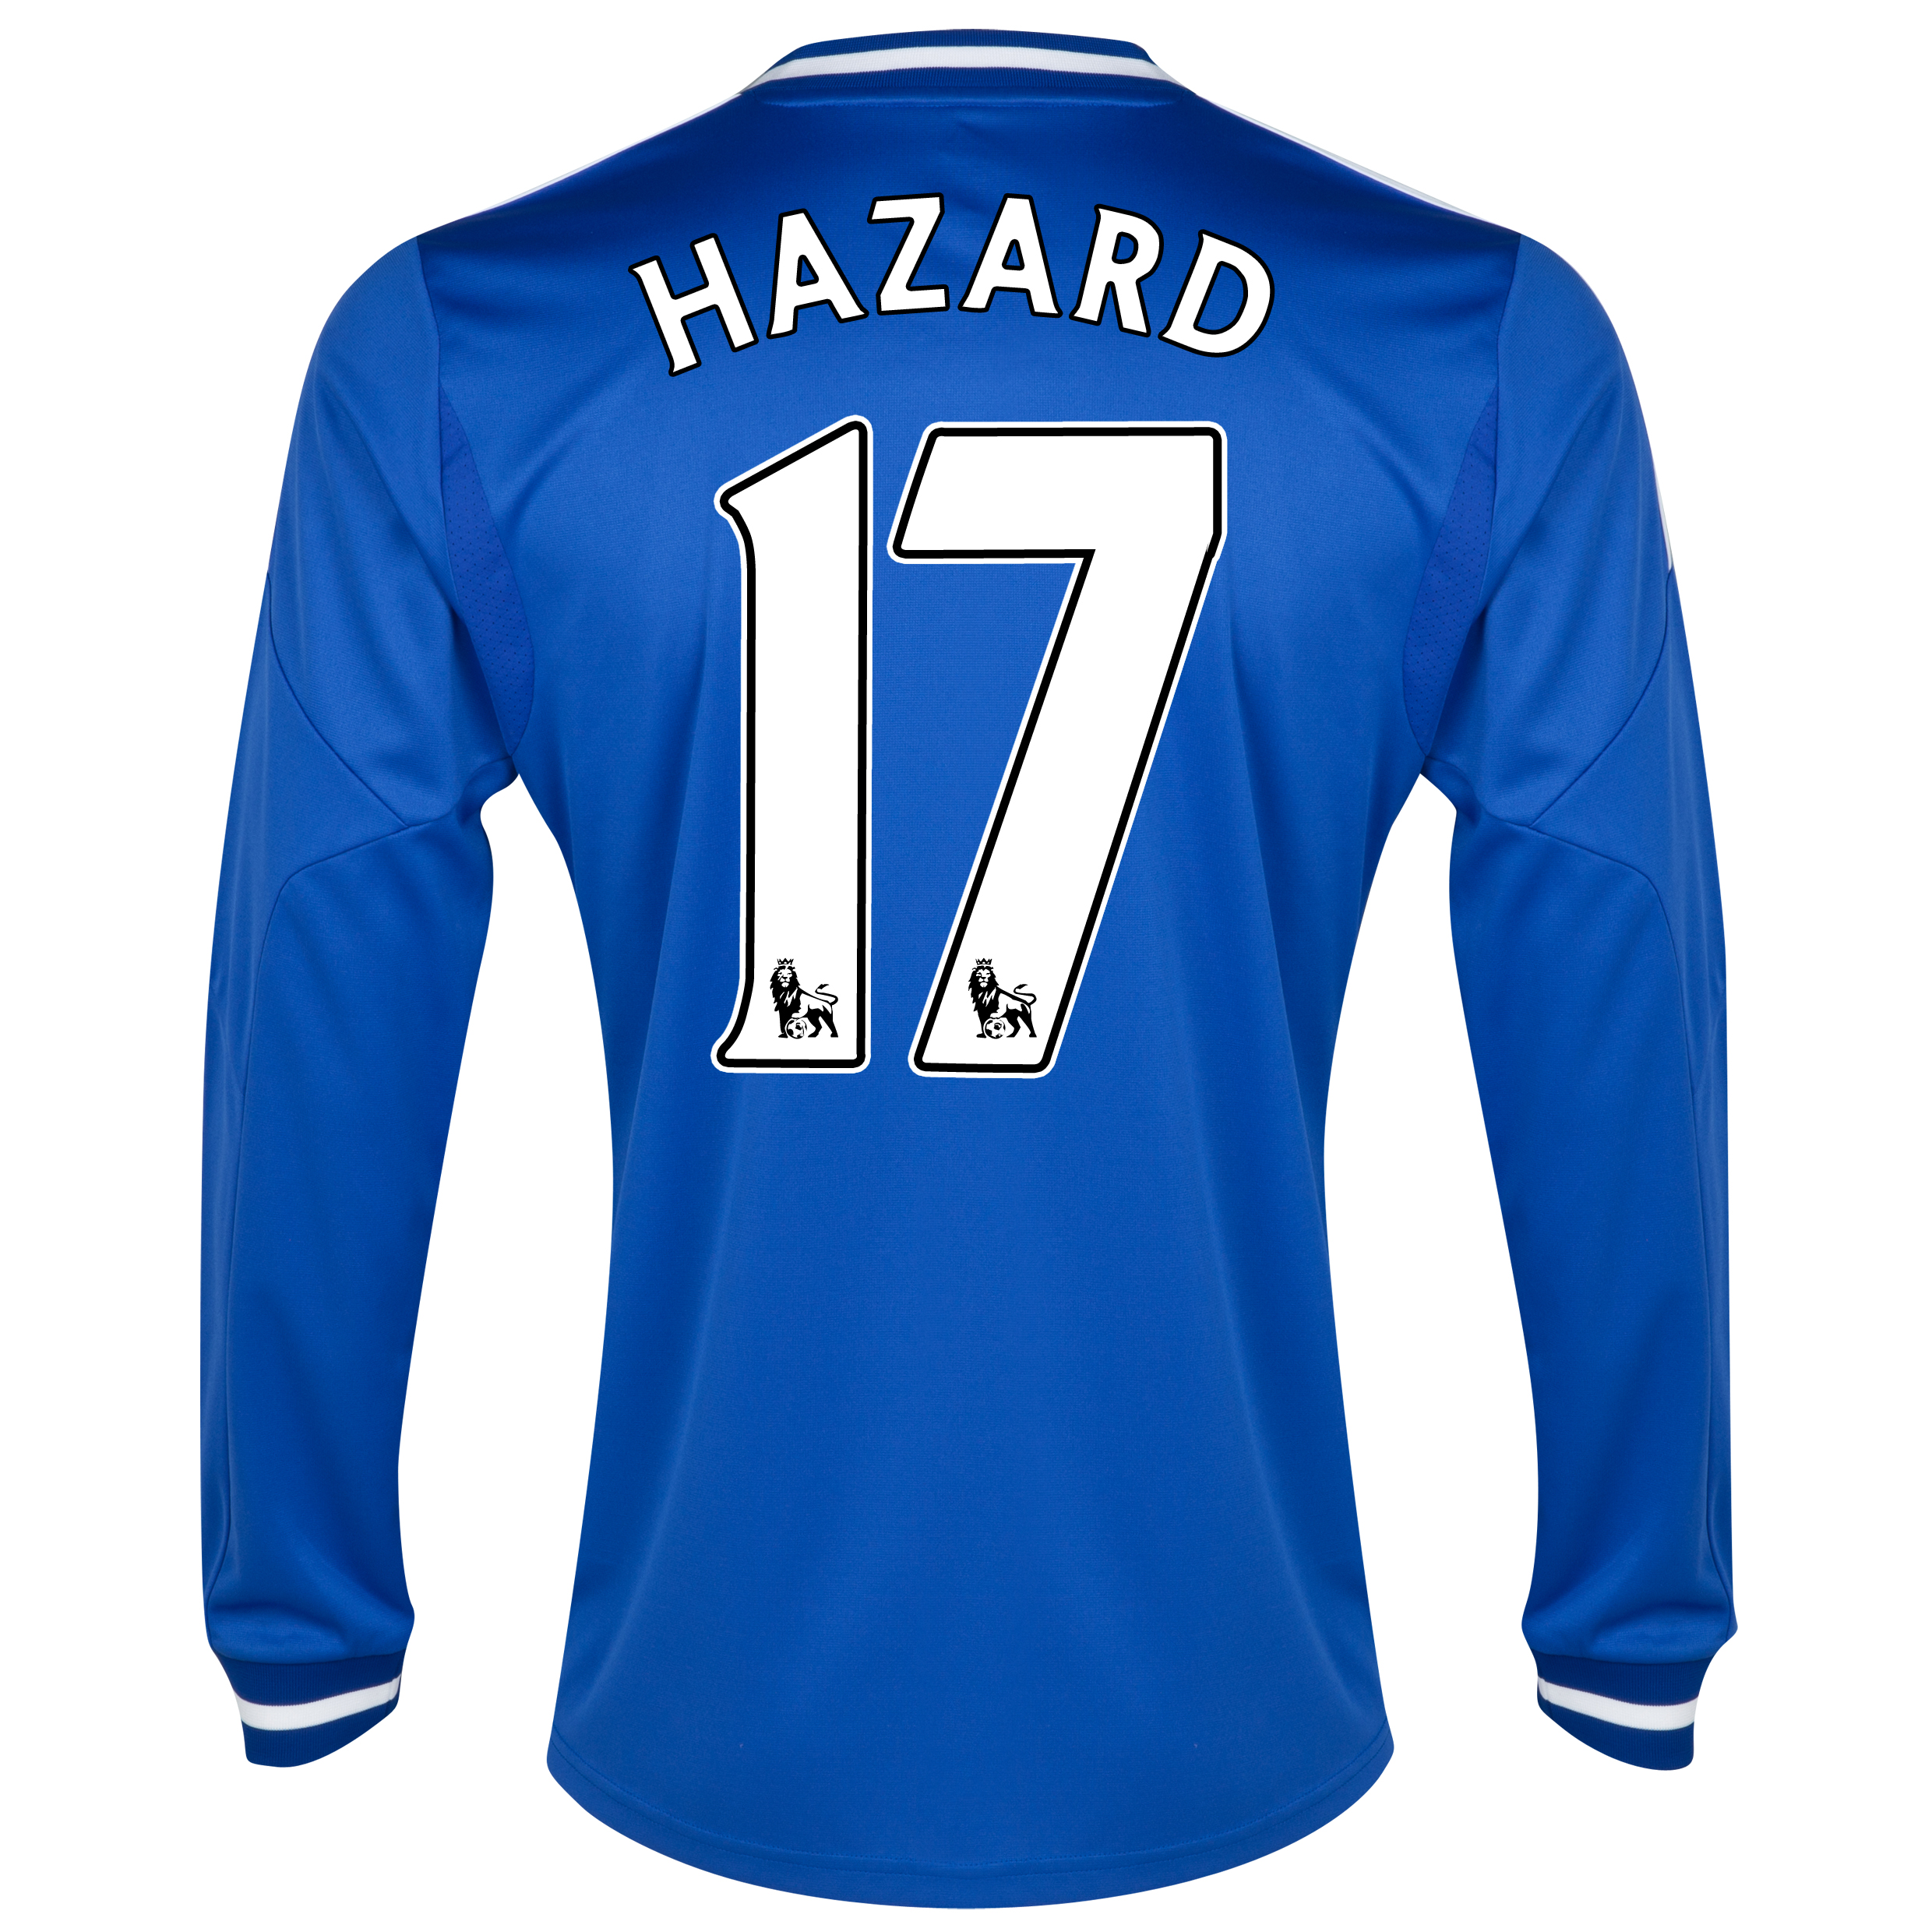 Chelsea Home Shirt 2013/14 - Long Sleeve with Hazard 17 printing